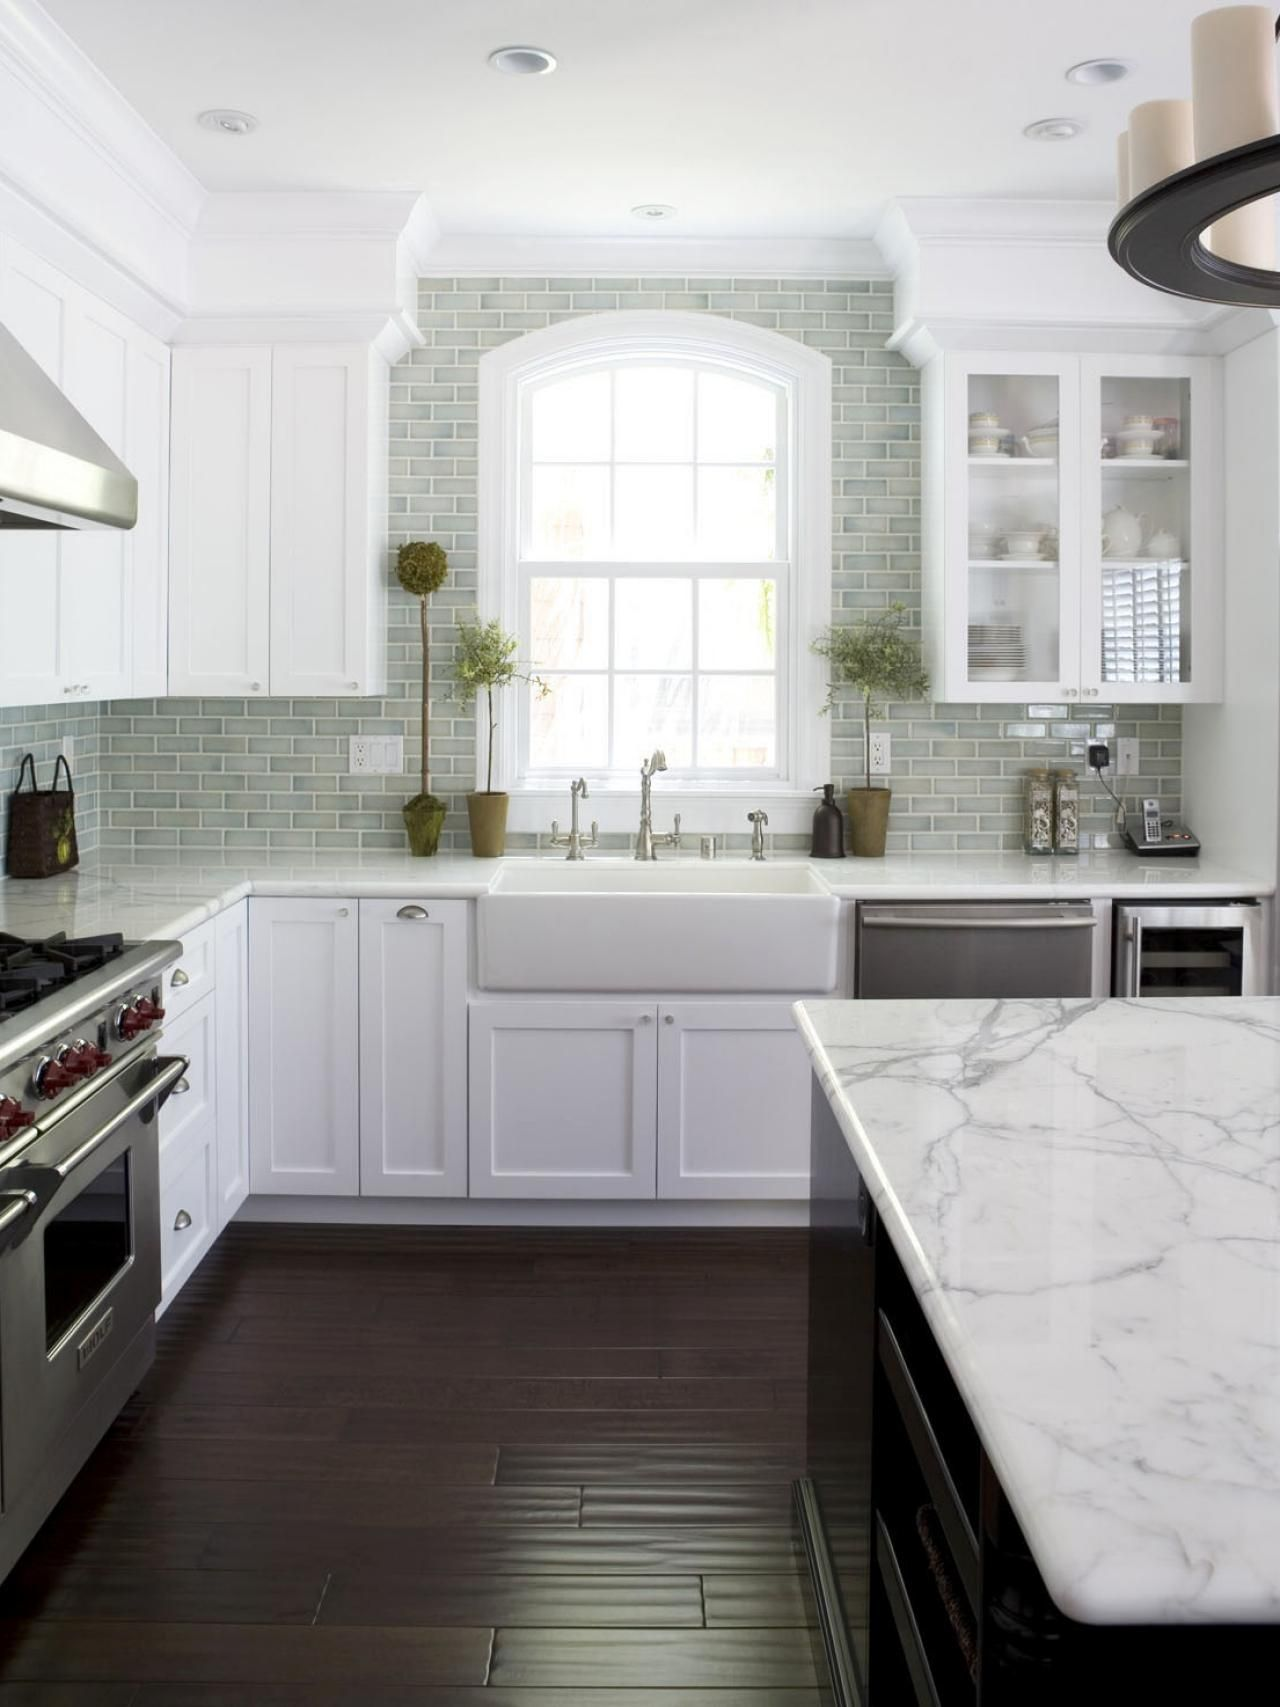 kitchen ideas with marble countertops our 40 favorite white kitchens | kitchen ideas u0026 design with cabinets, TFLHELQ